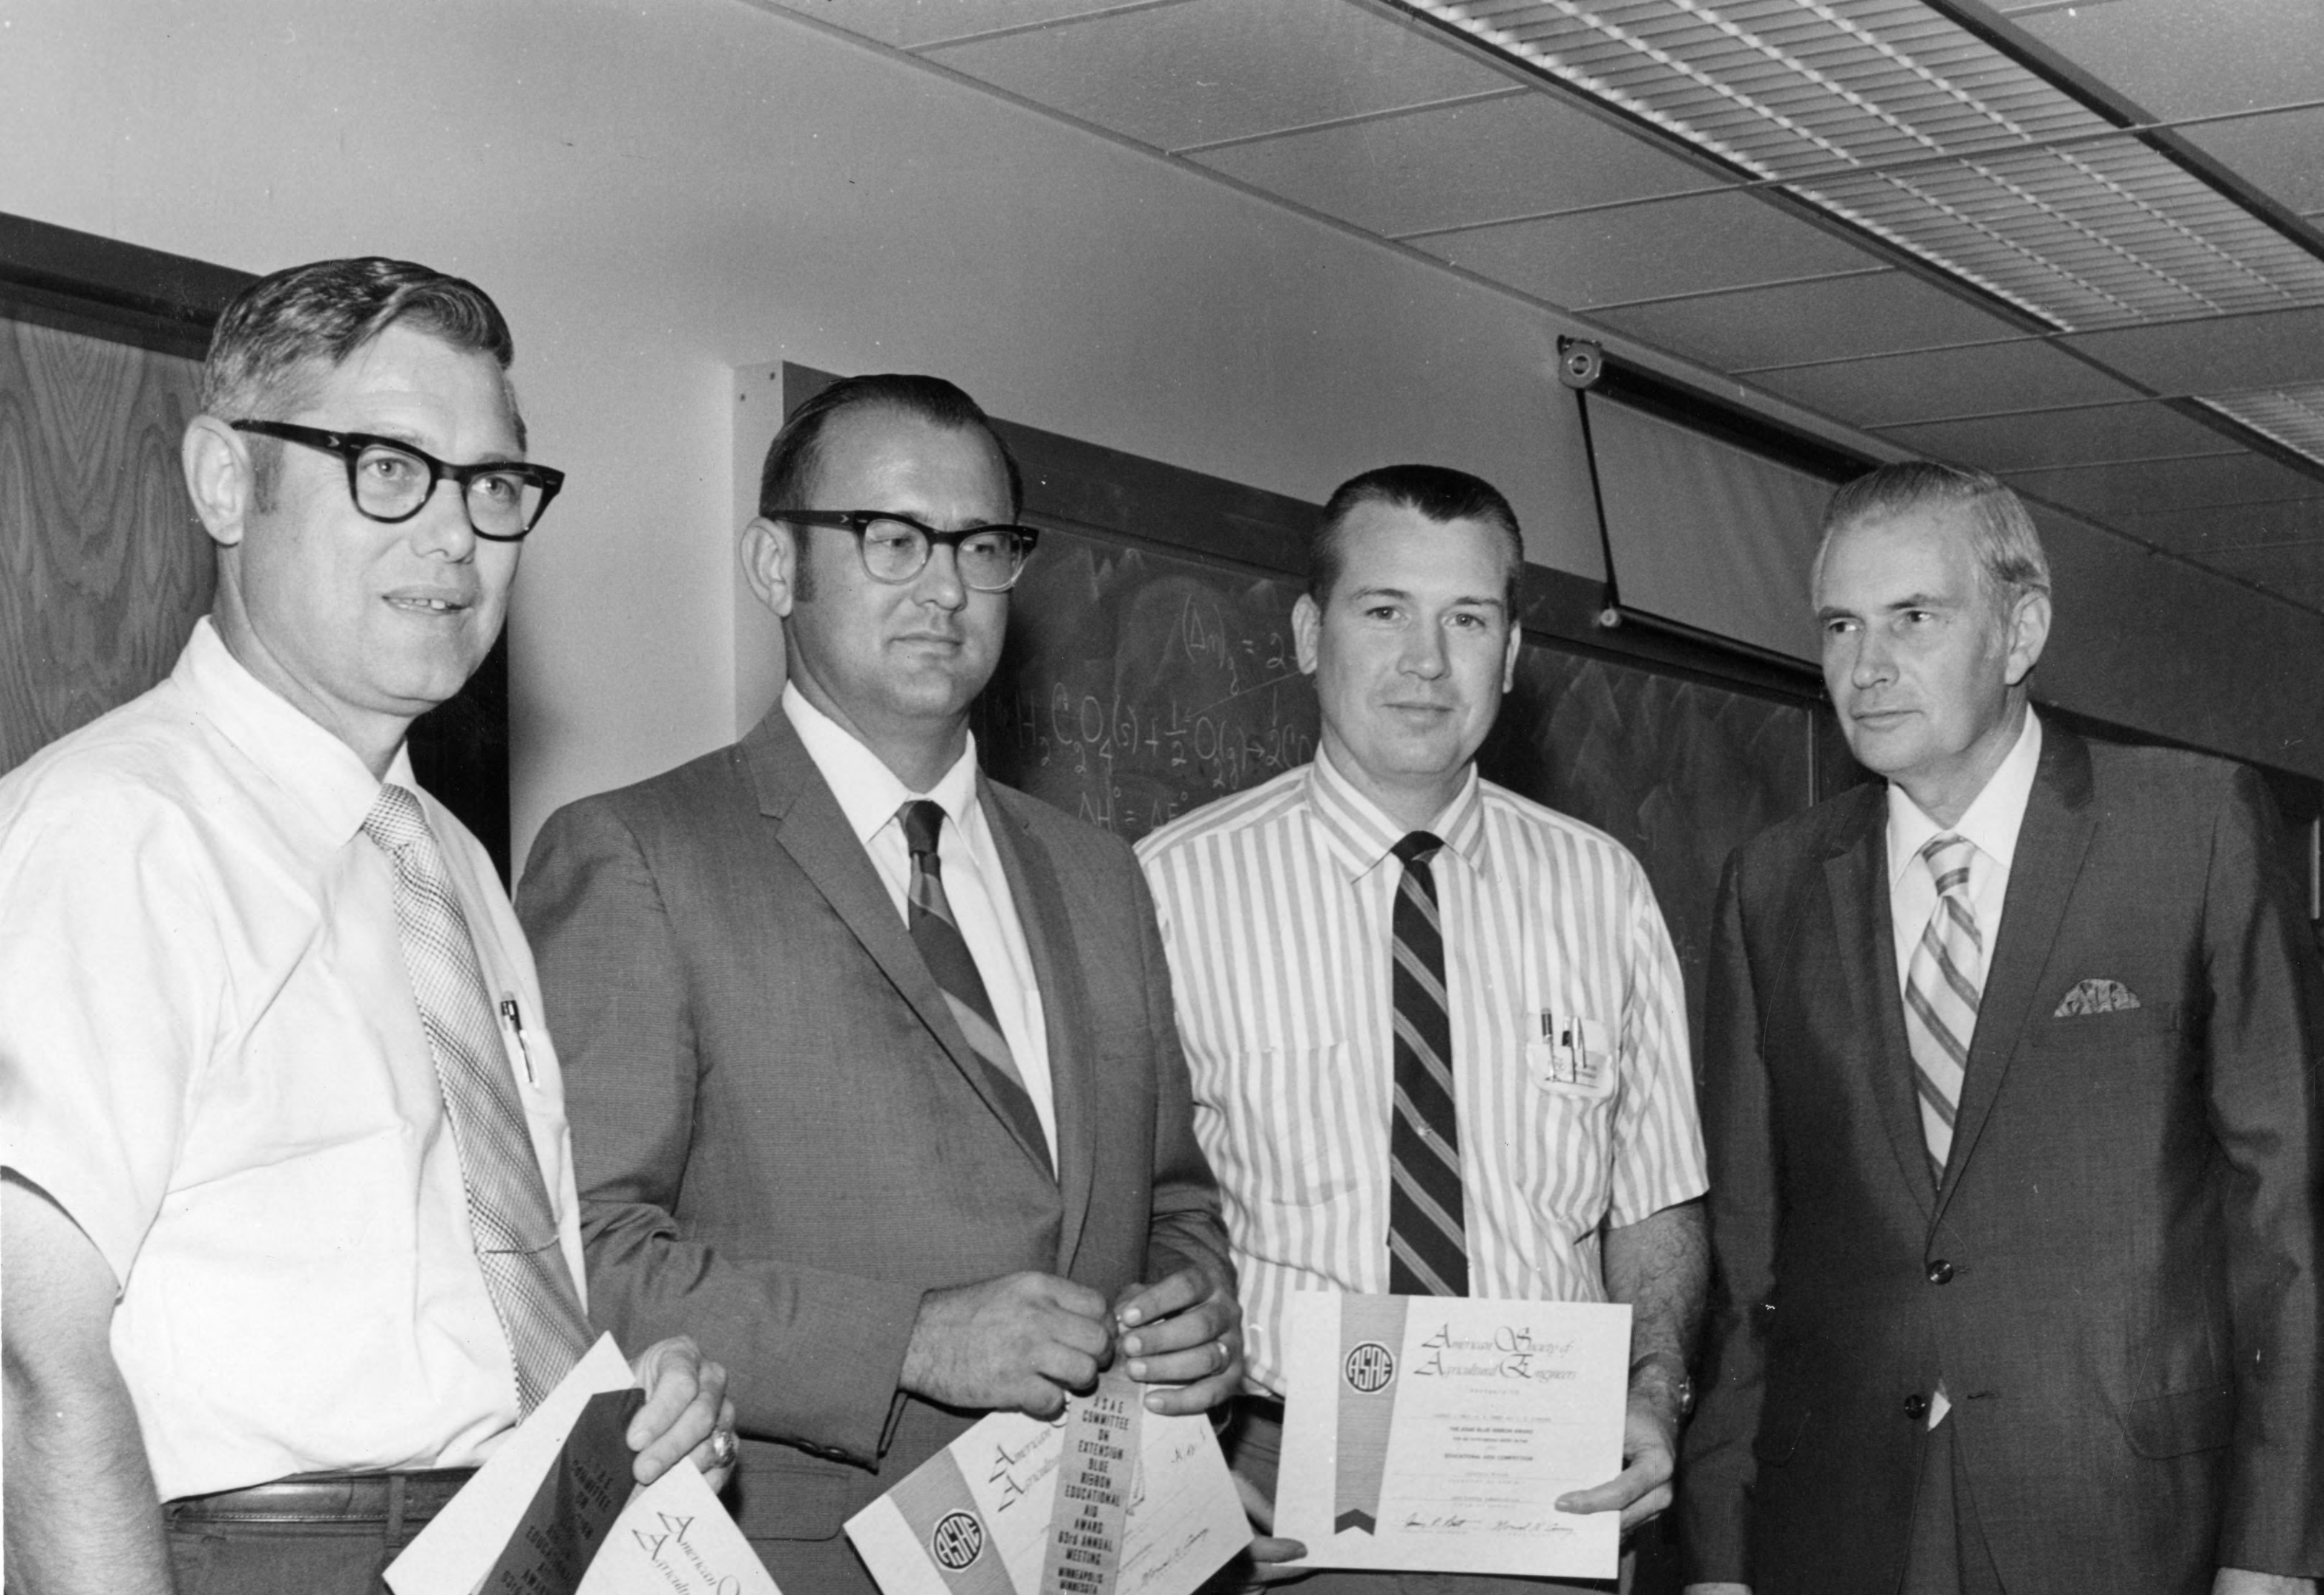 George Hyatt, Three Men with Certificates and Ribbons